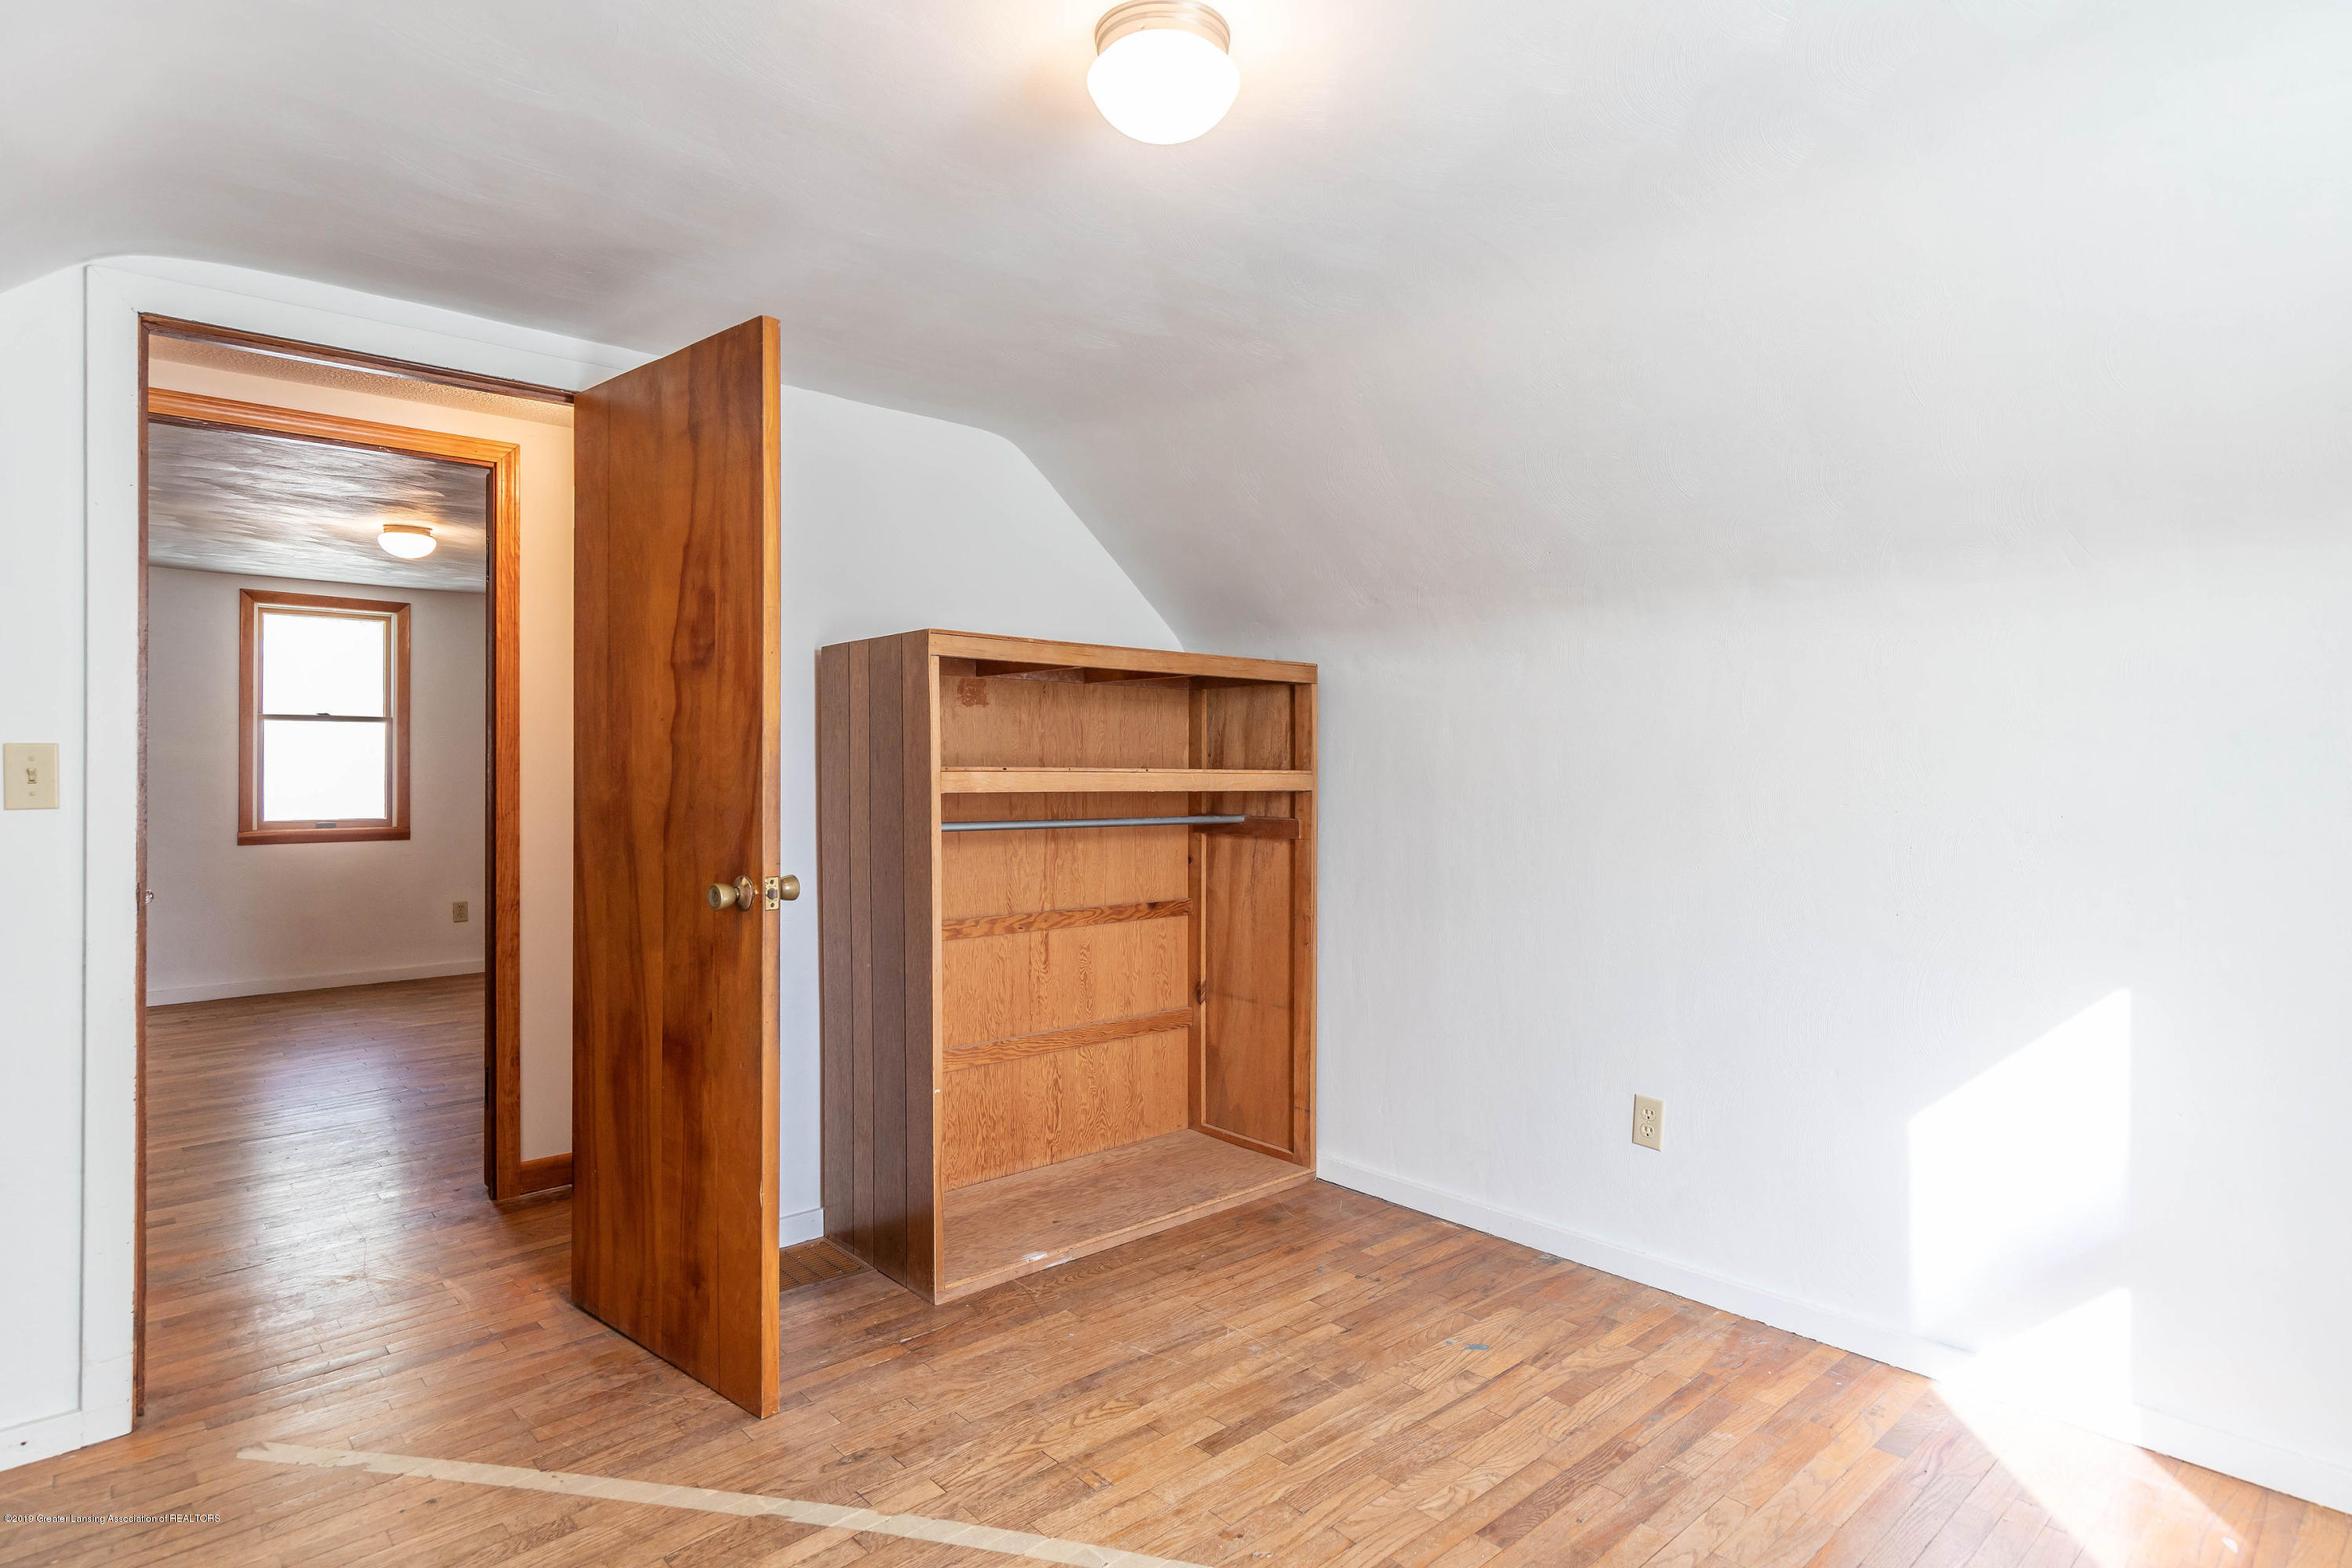 828 Hein Ave - heinbed31(1of1) - 23